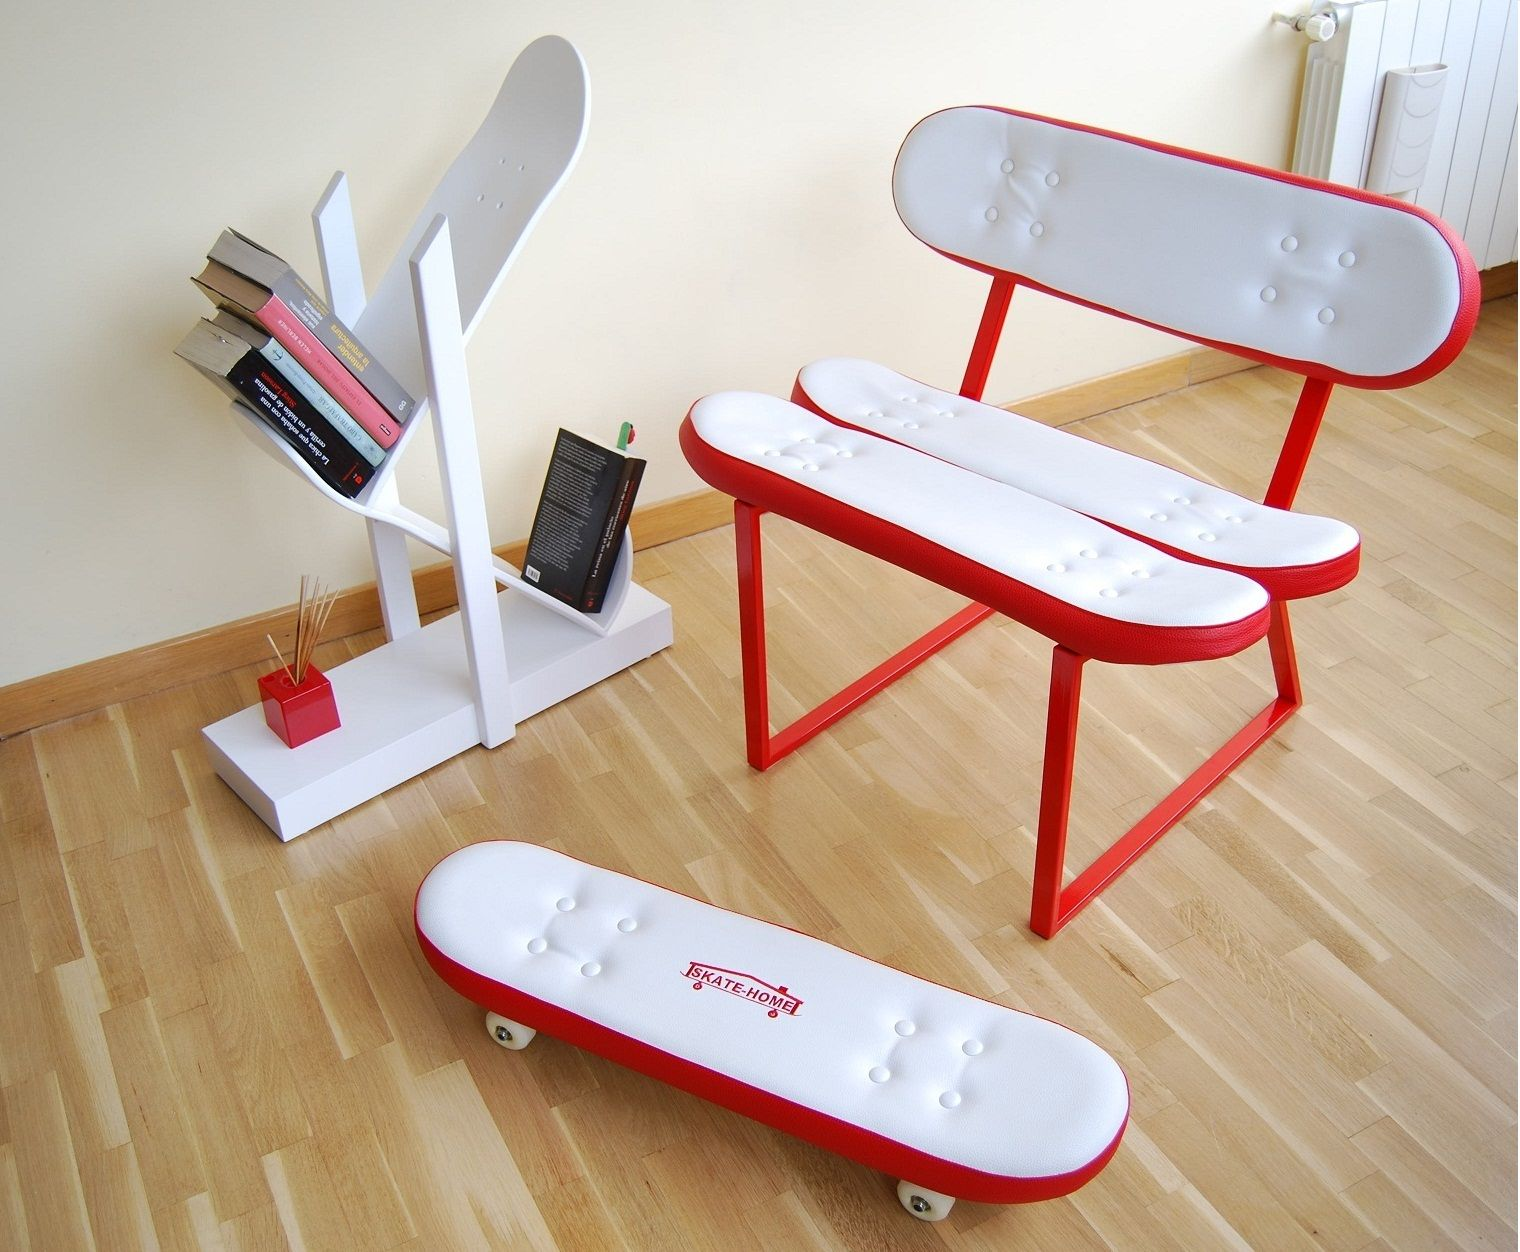 Skateboard Bedroom Furniture beautiful colored fabric will look great as a cover for skateboard